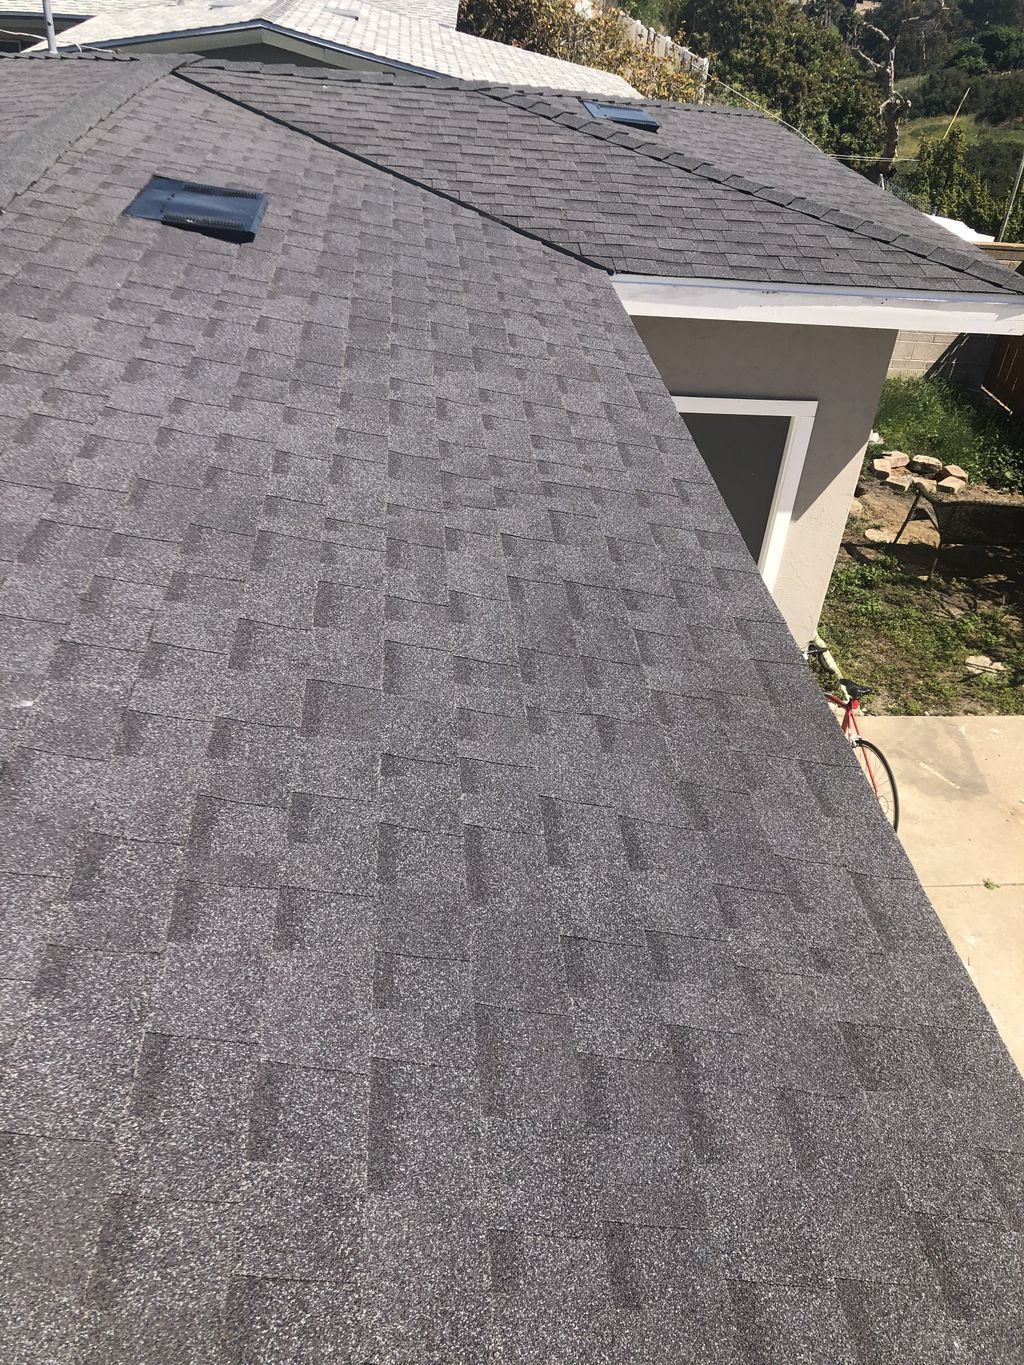 Owens Corning Duration Night Sky Roof System